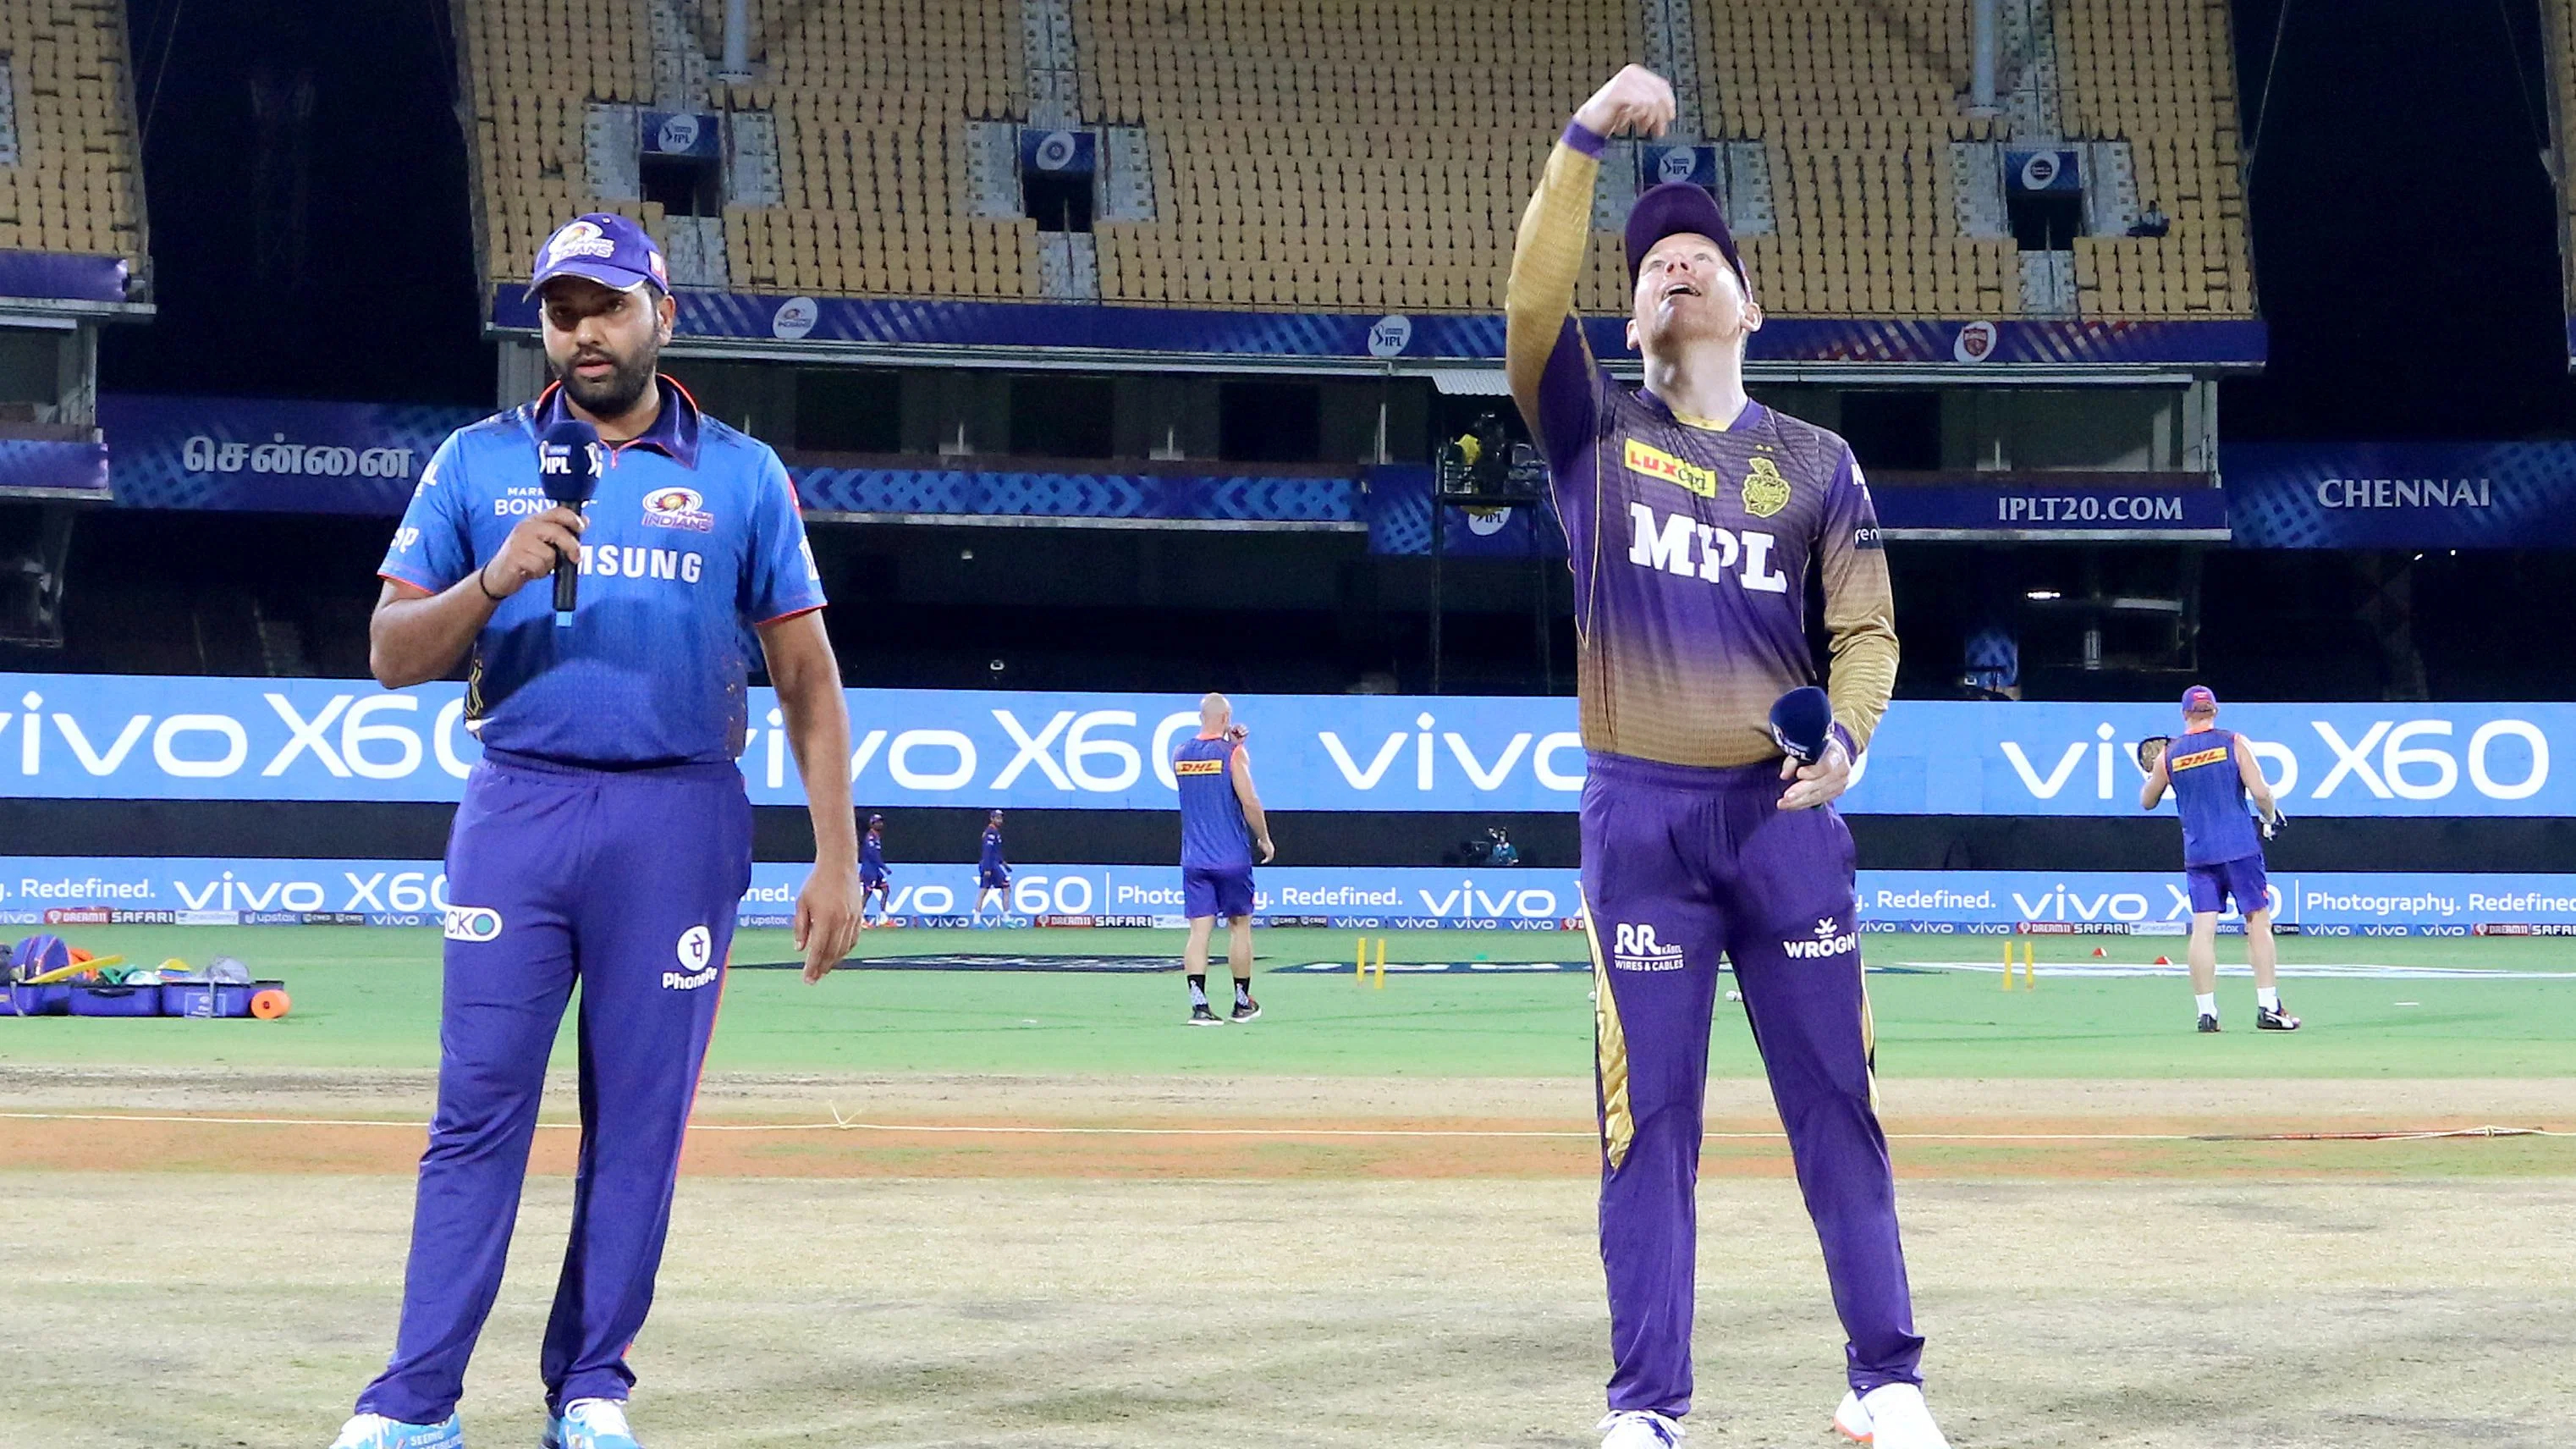 Mumbai Indians had defeated KKR in their previous encounter in IPL 2021 in Chennai   IPL-BCCI